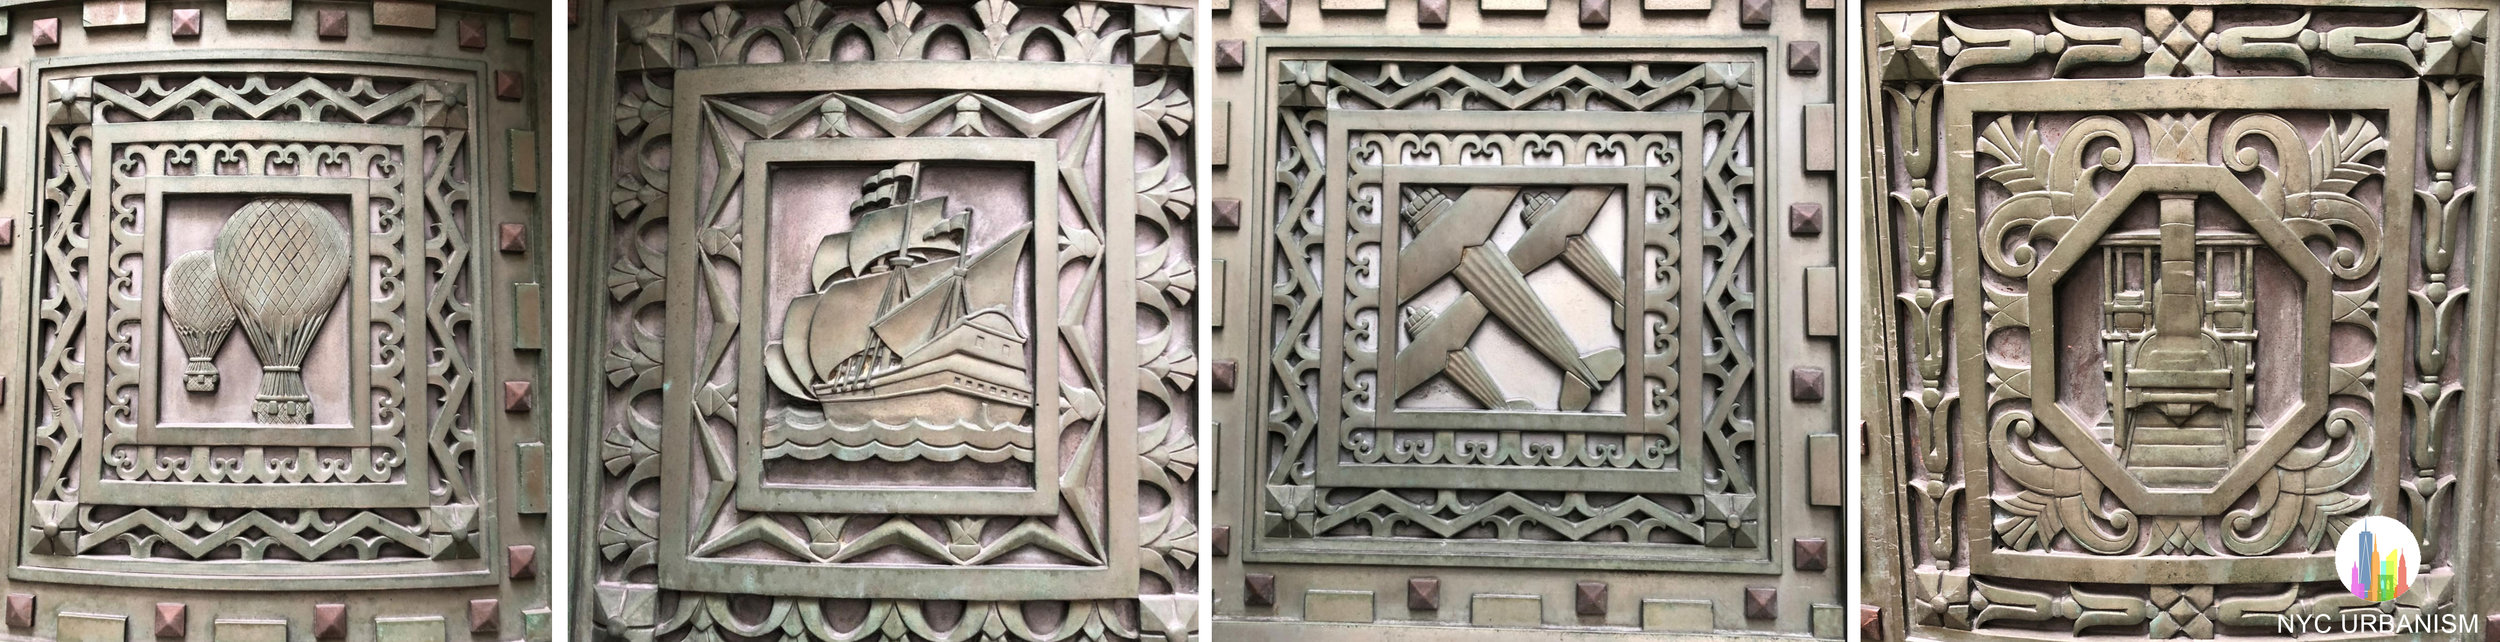 Seals on the doors depicting modern modes of transportation.